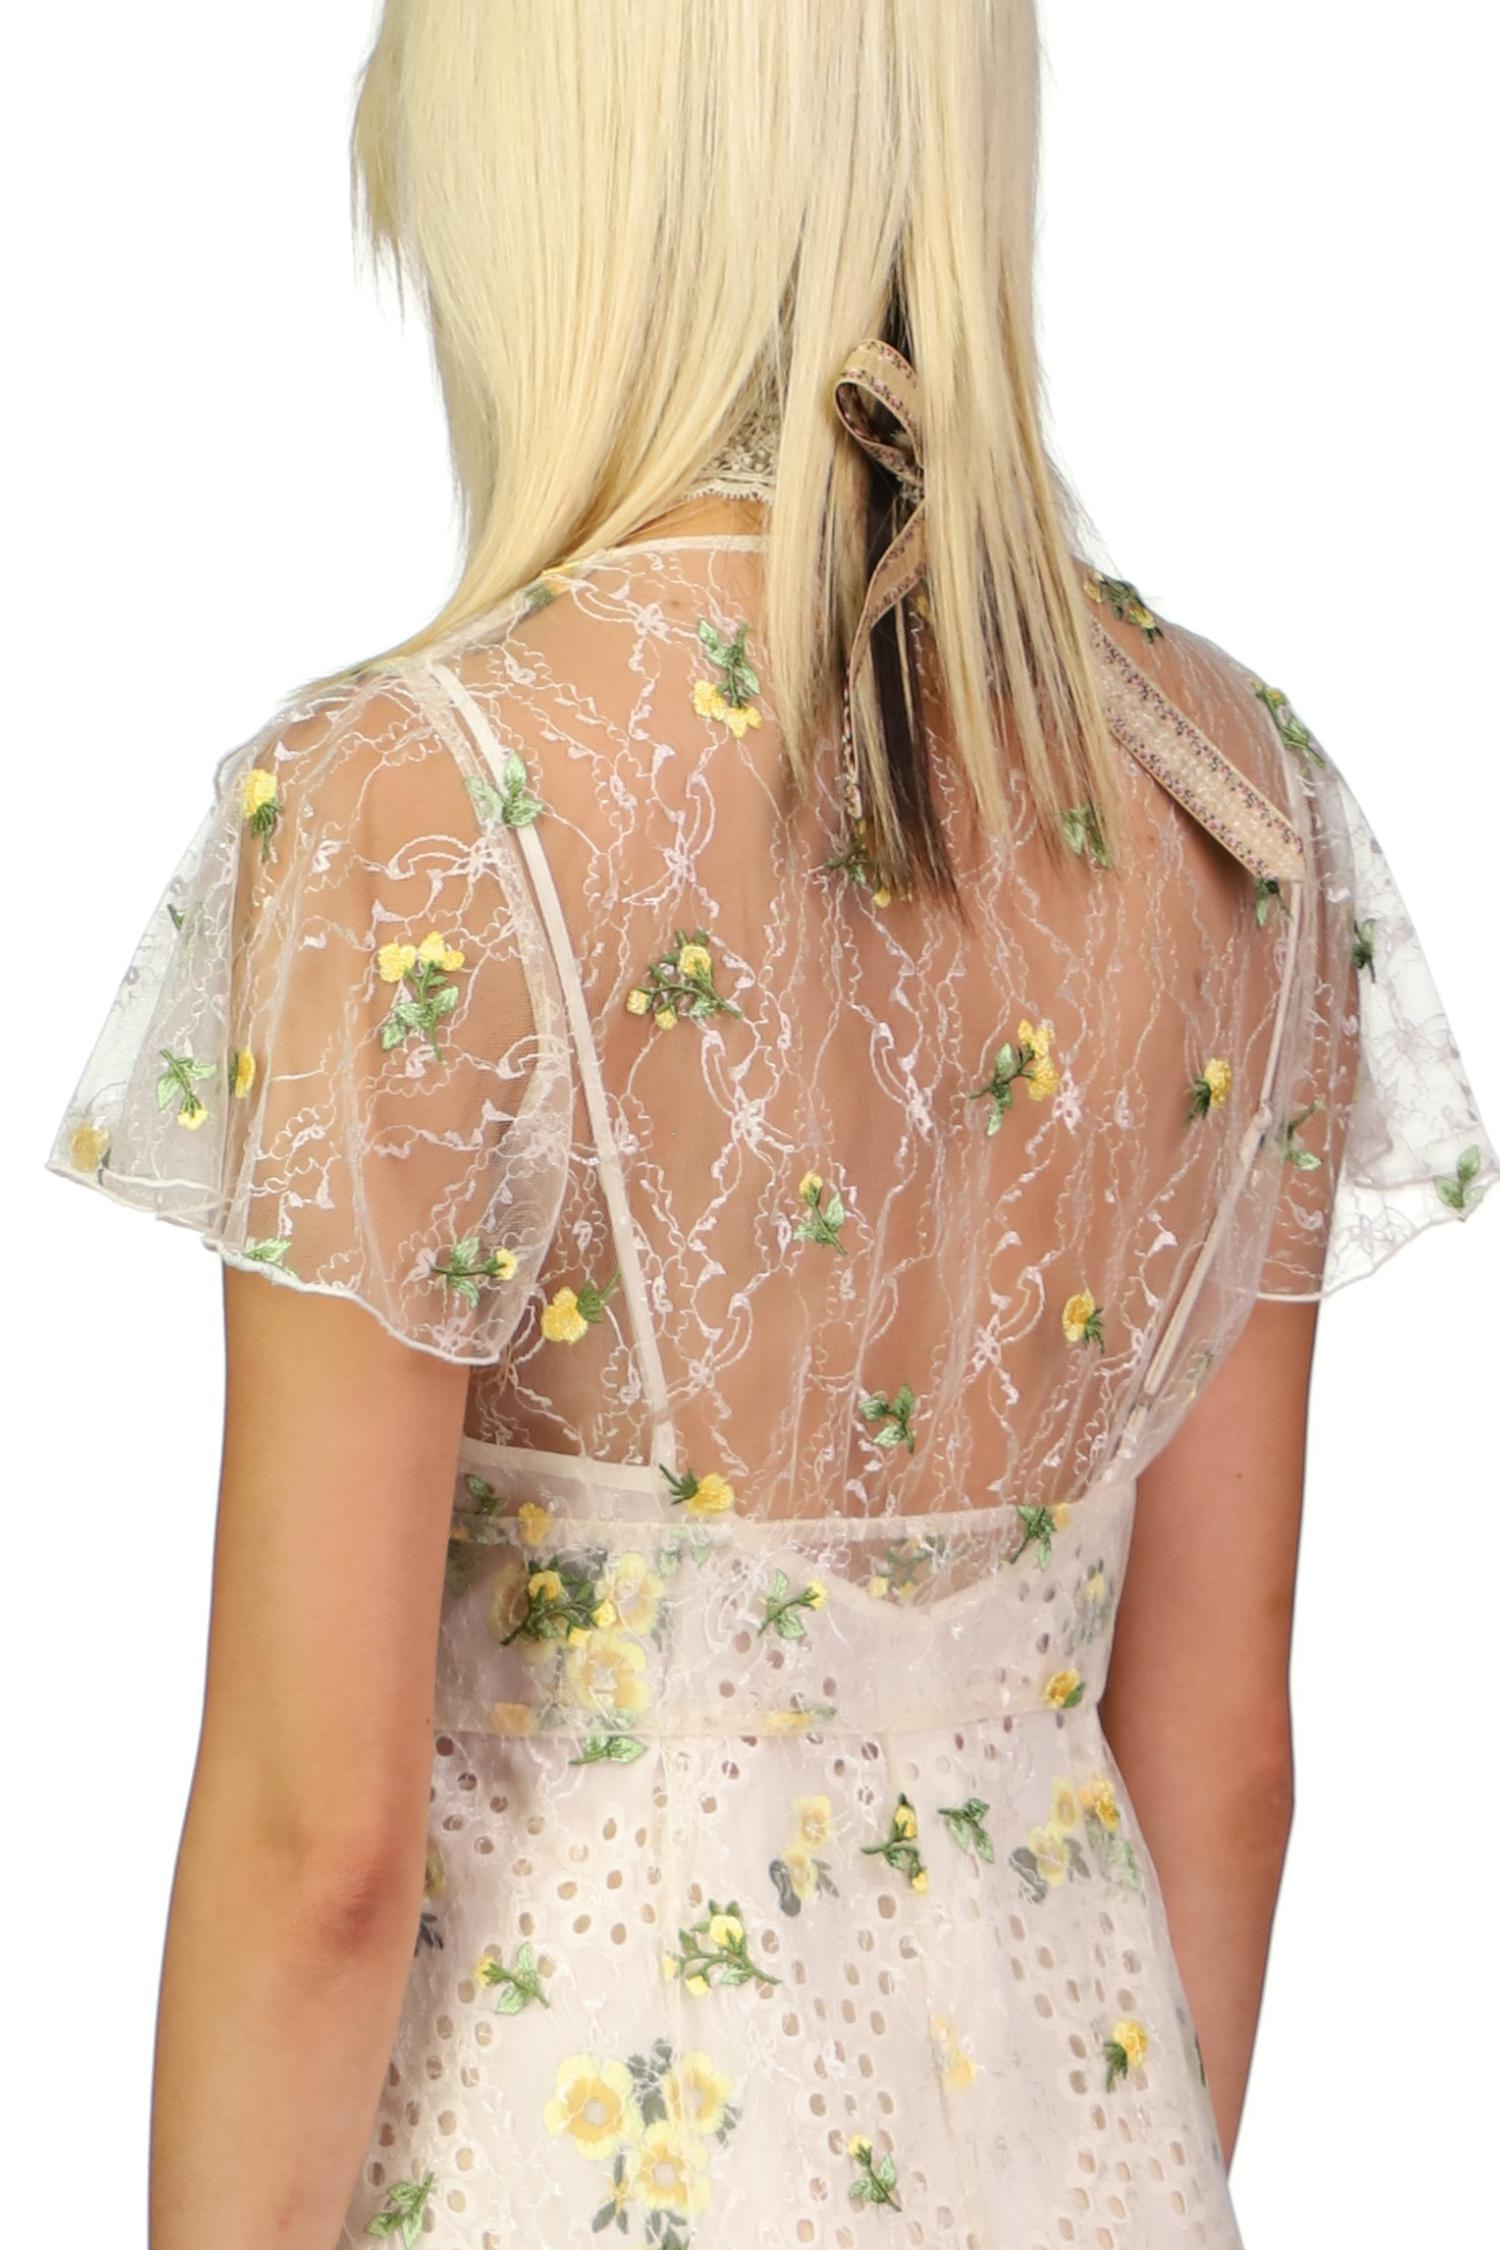 Scattered Blooms Lace Cover Up 4